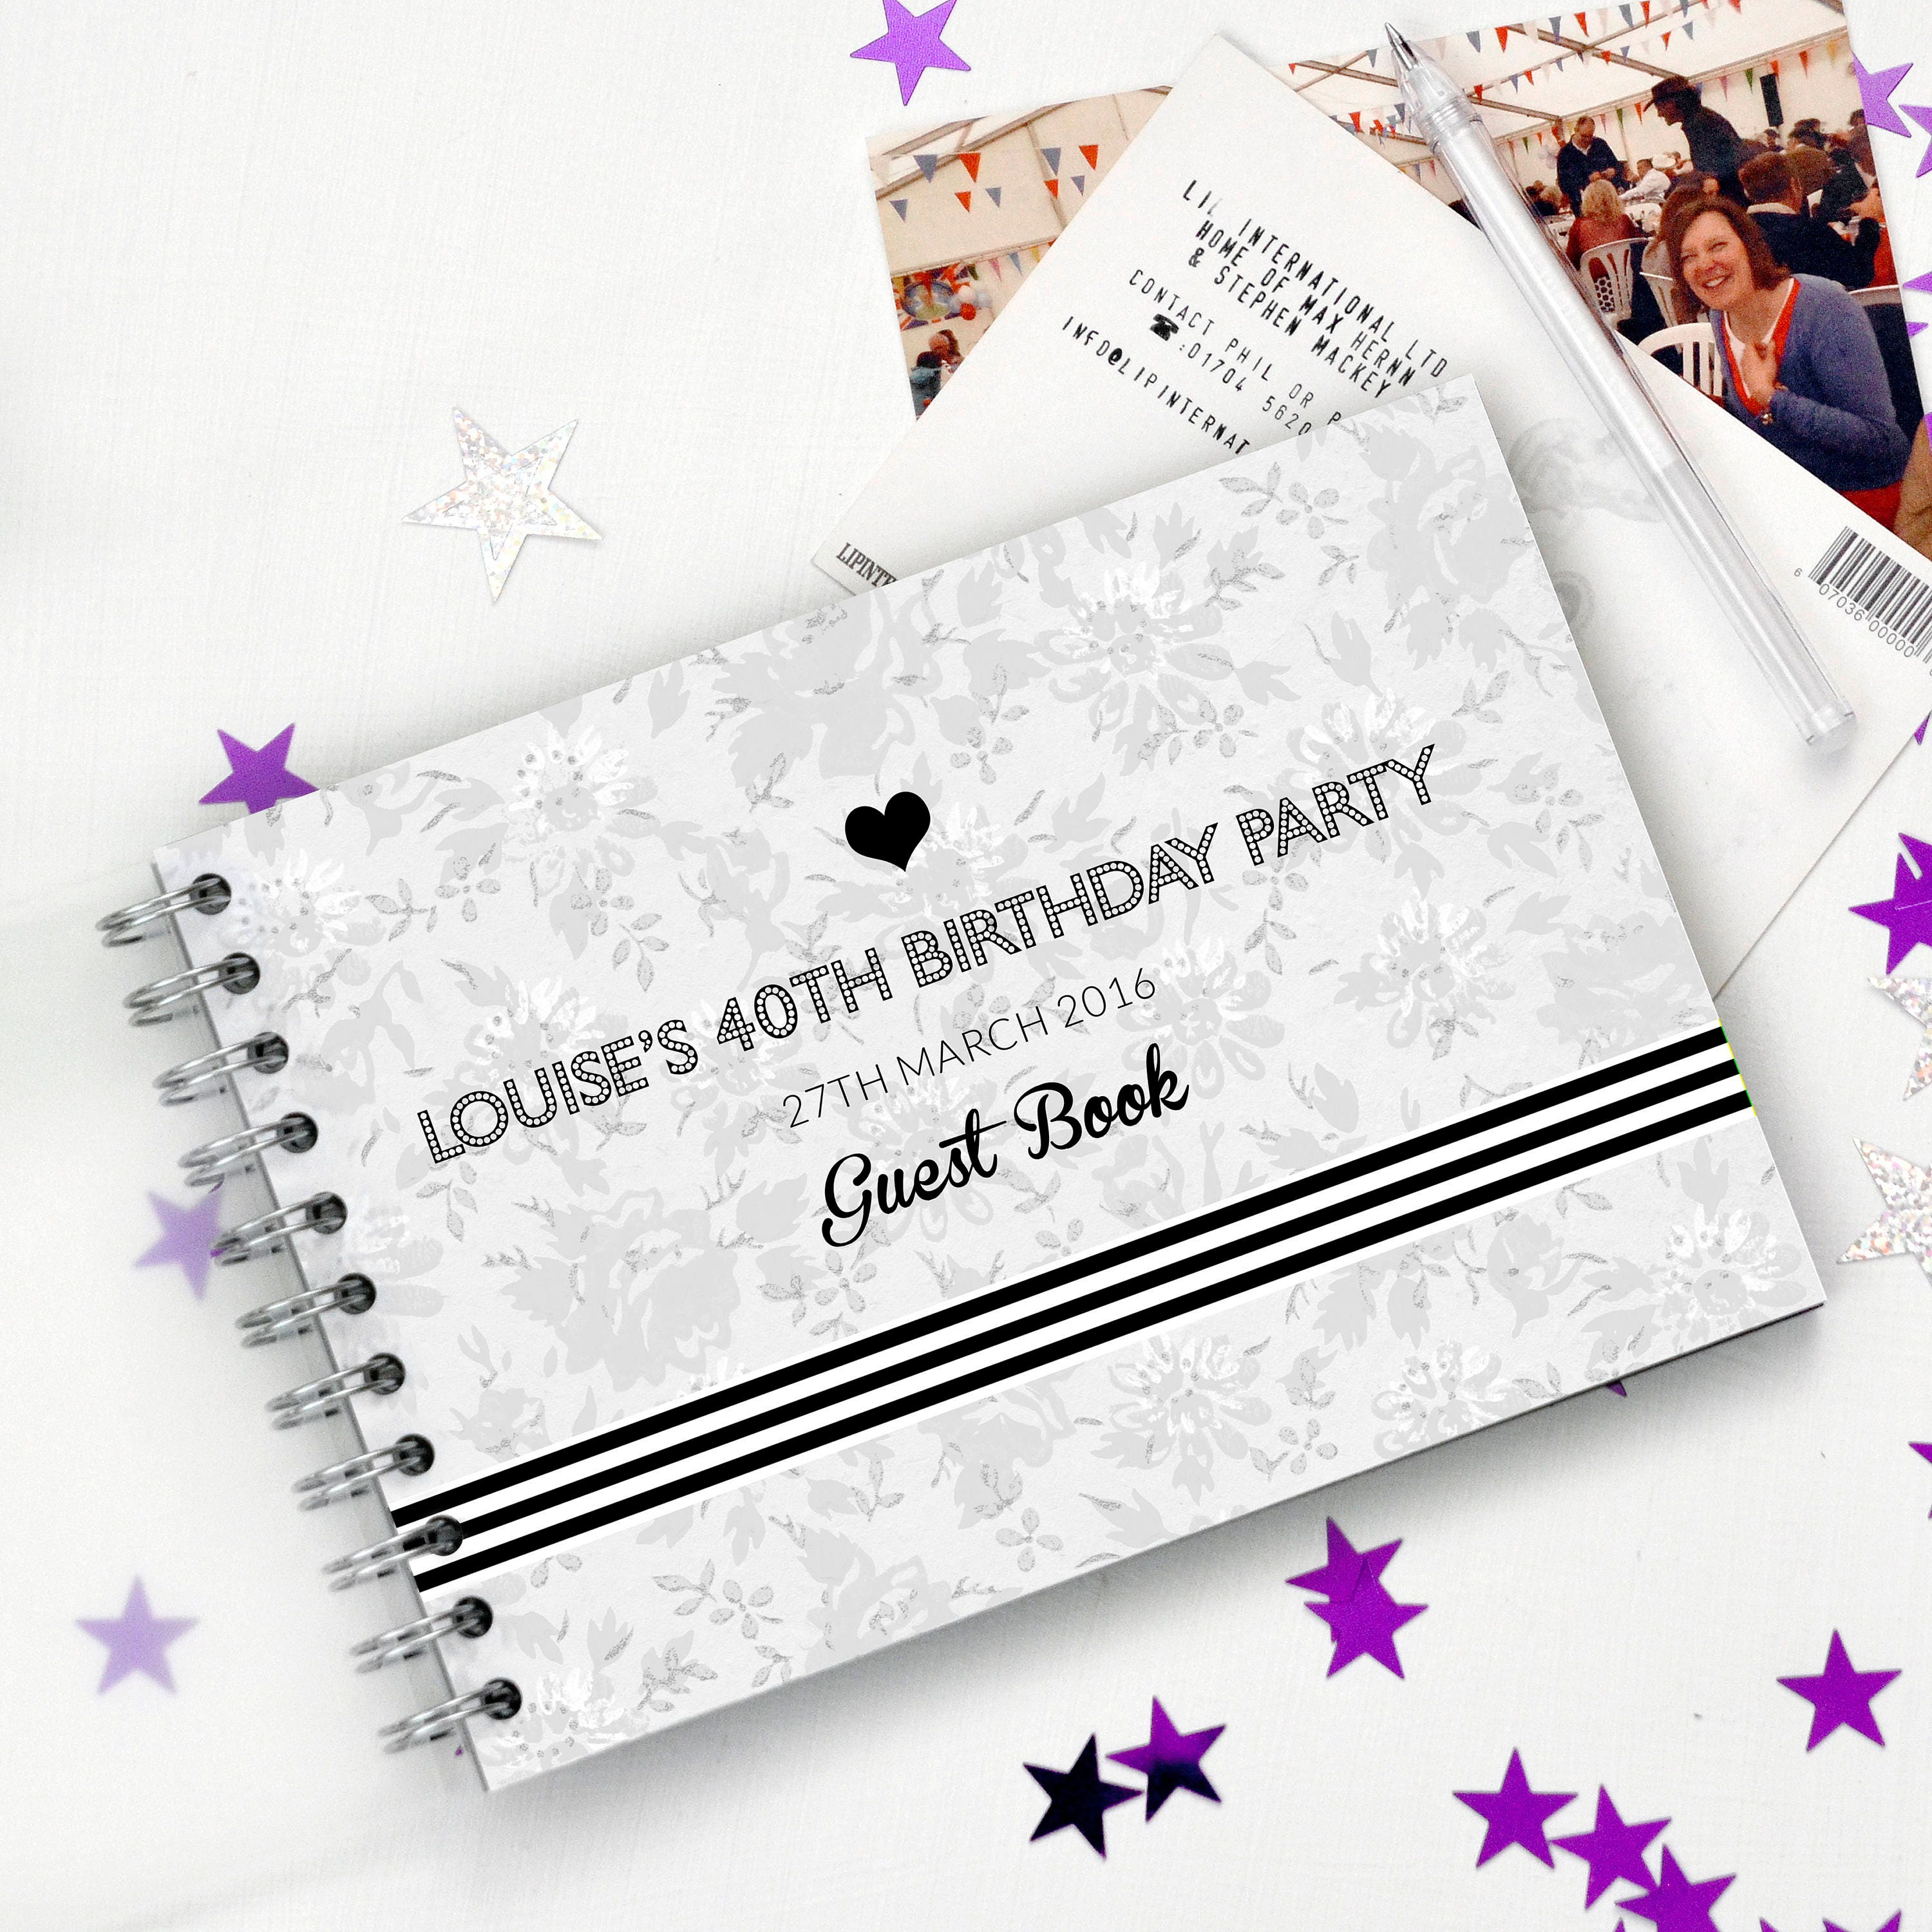 40th birthday guest book